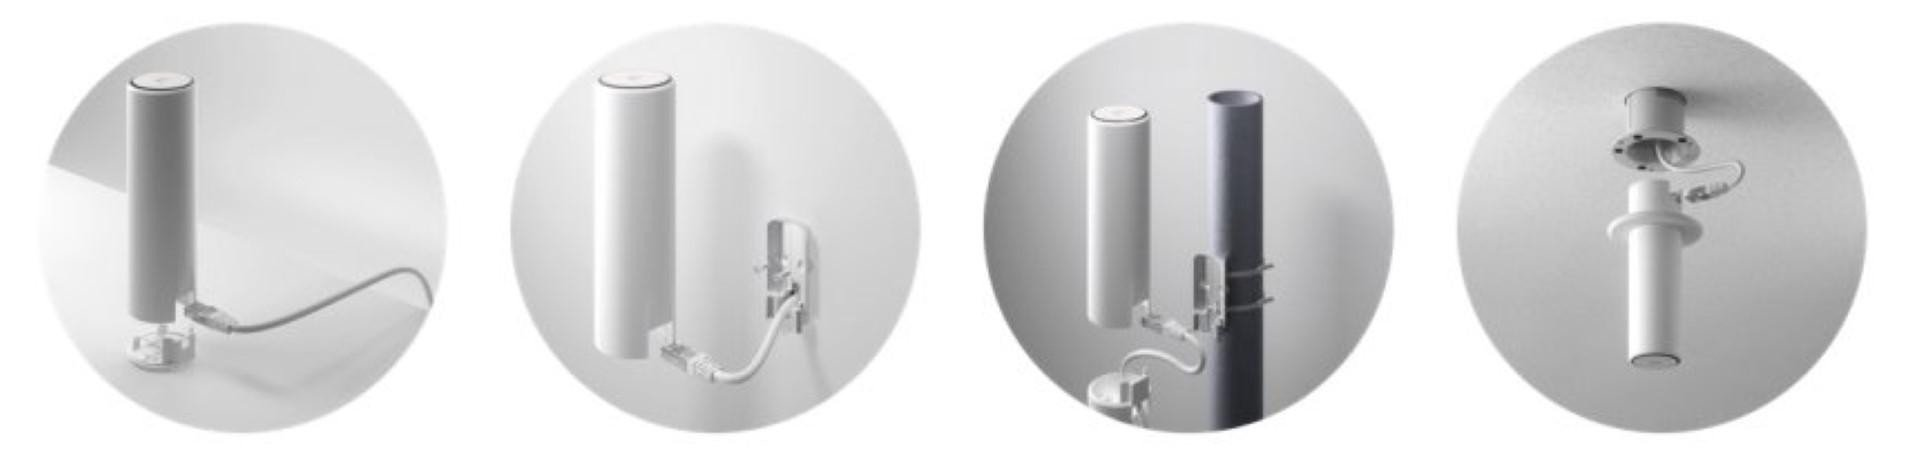 Ubiquiti UniFi Acess Point UAP-FLEX HD, 4x4 MU-MIMO Technology with 1.733 Gbps, Weatherproof for Indoor / Outdoor Installations, Flexible Mounting Options for Ceiling, Pole, Tabletop, or Wall, 1 x  10/100/1000 Ethernet Port, Max Power Consumption 10.5W. 2.4 GHz-300 Mbps, 5 GHz - 1733 Mbps. - imaginea 1